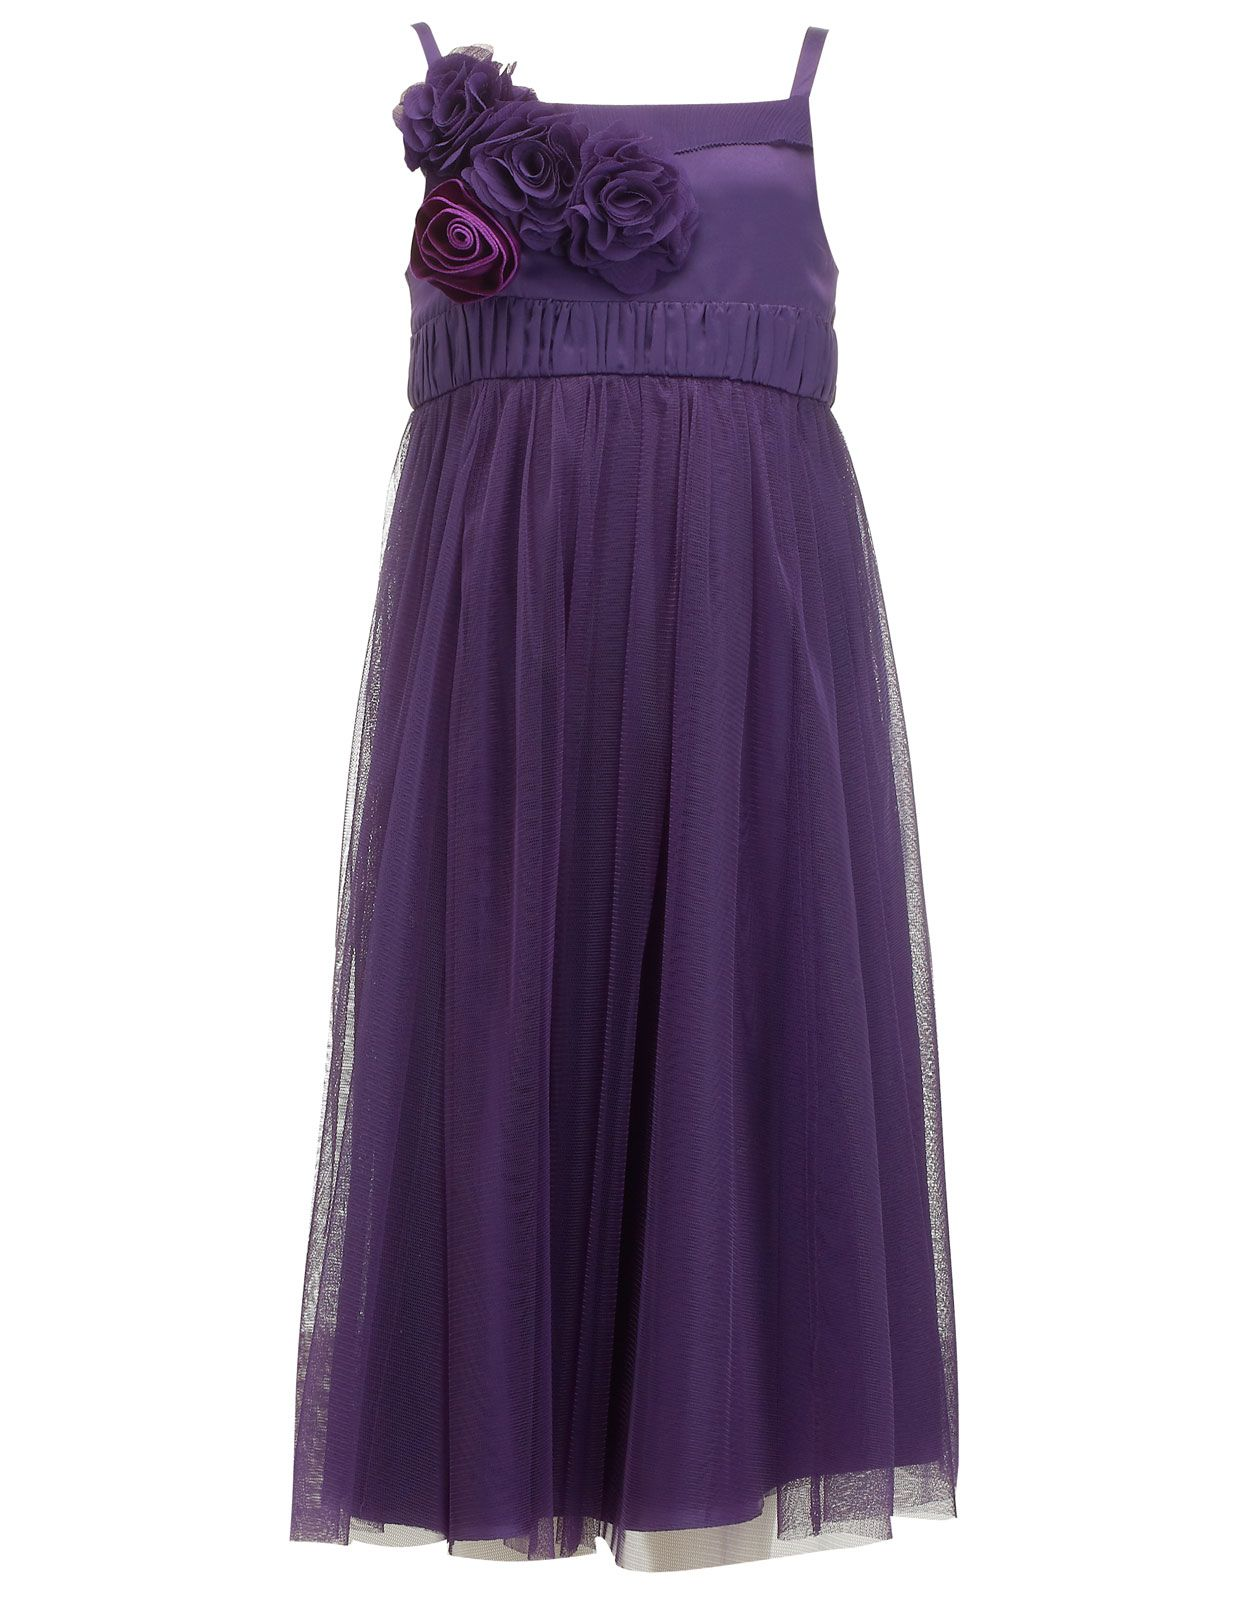 Rosalinde Dress | Purple | Monsoon | Neutrals and solids - Dresses ...